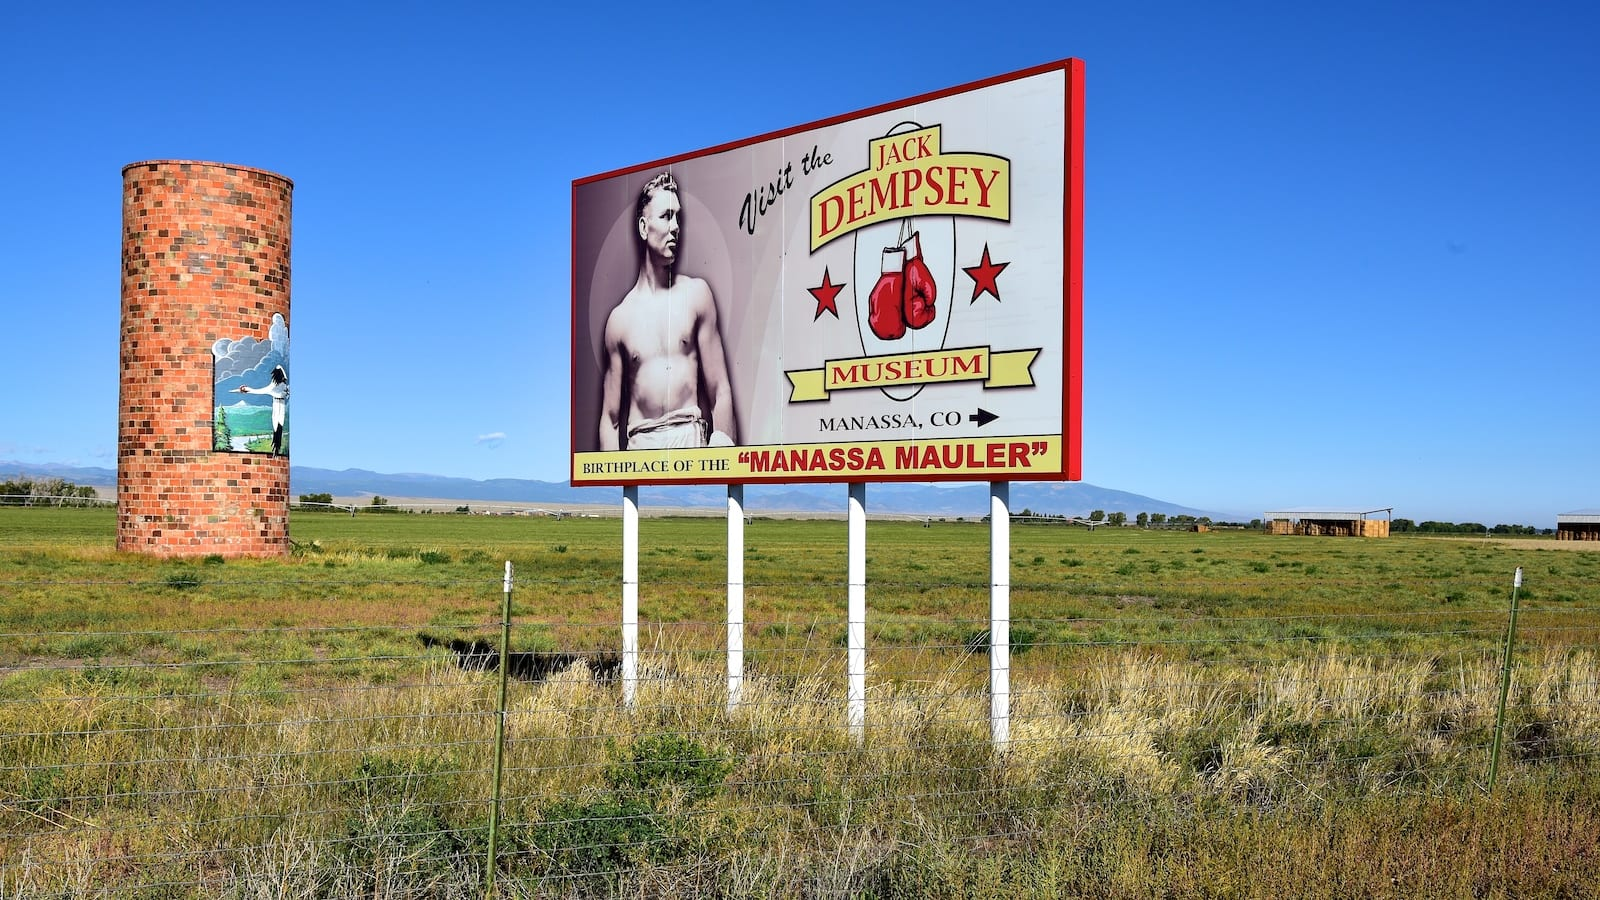 Jack Dempsey Museum Billboard at Exit Sign for Manassa CO